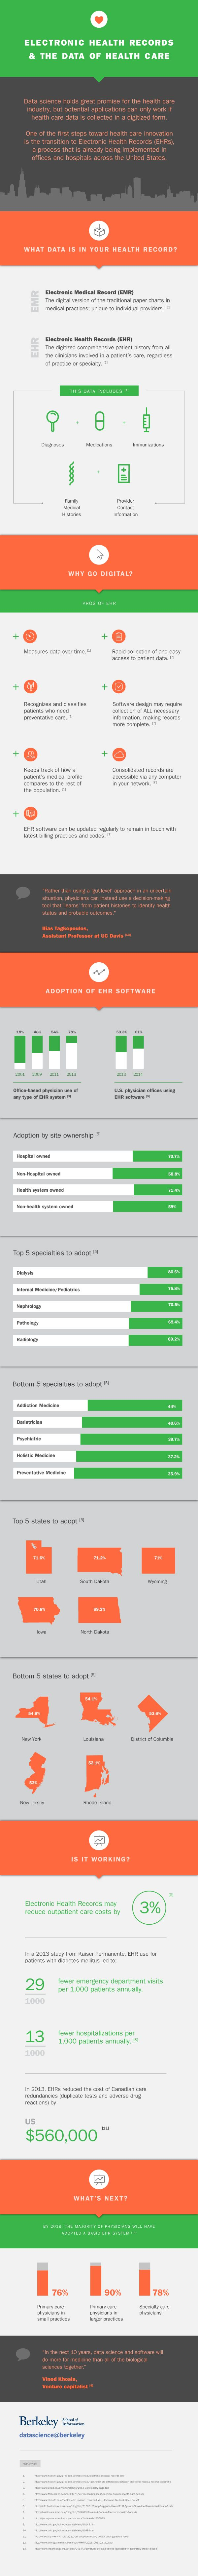 5 EHR Infographics that every provider must read